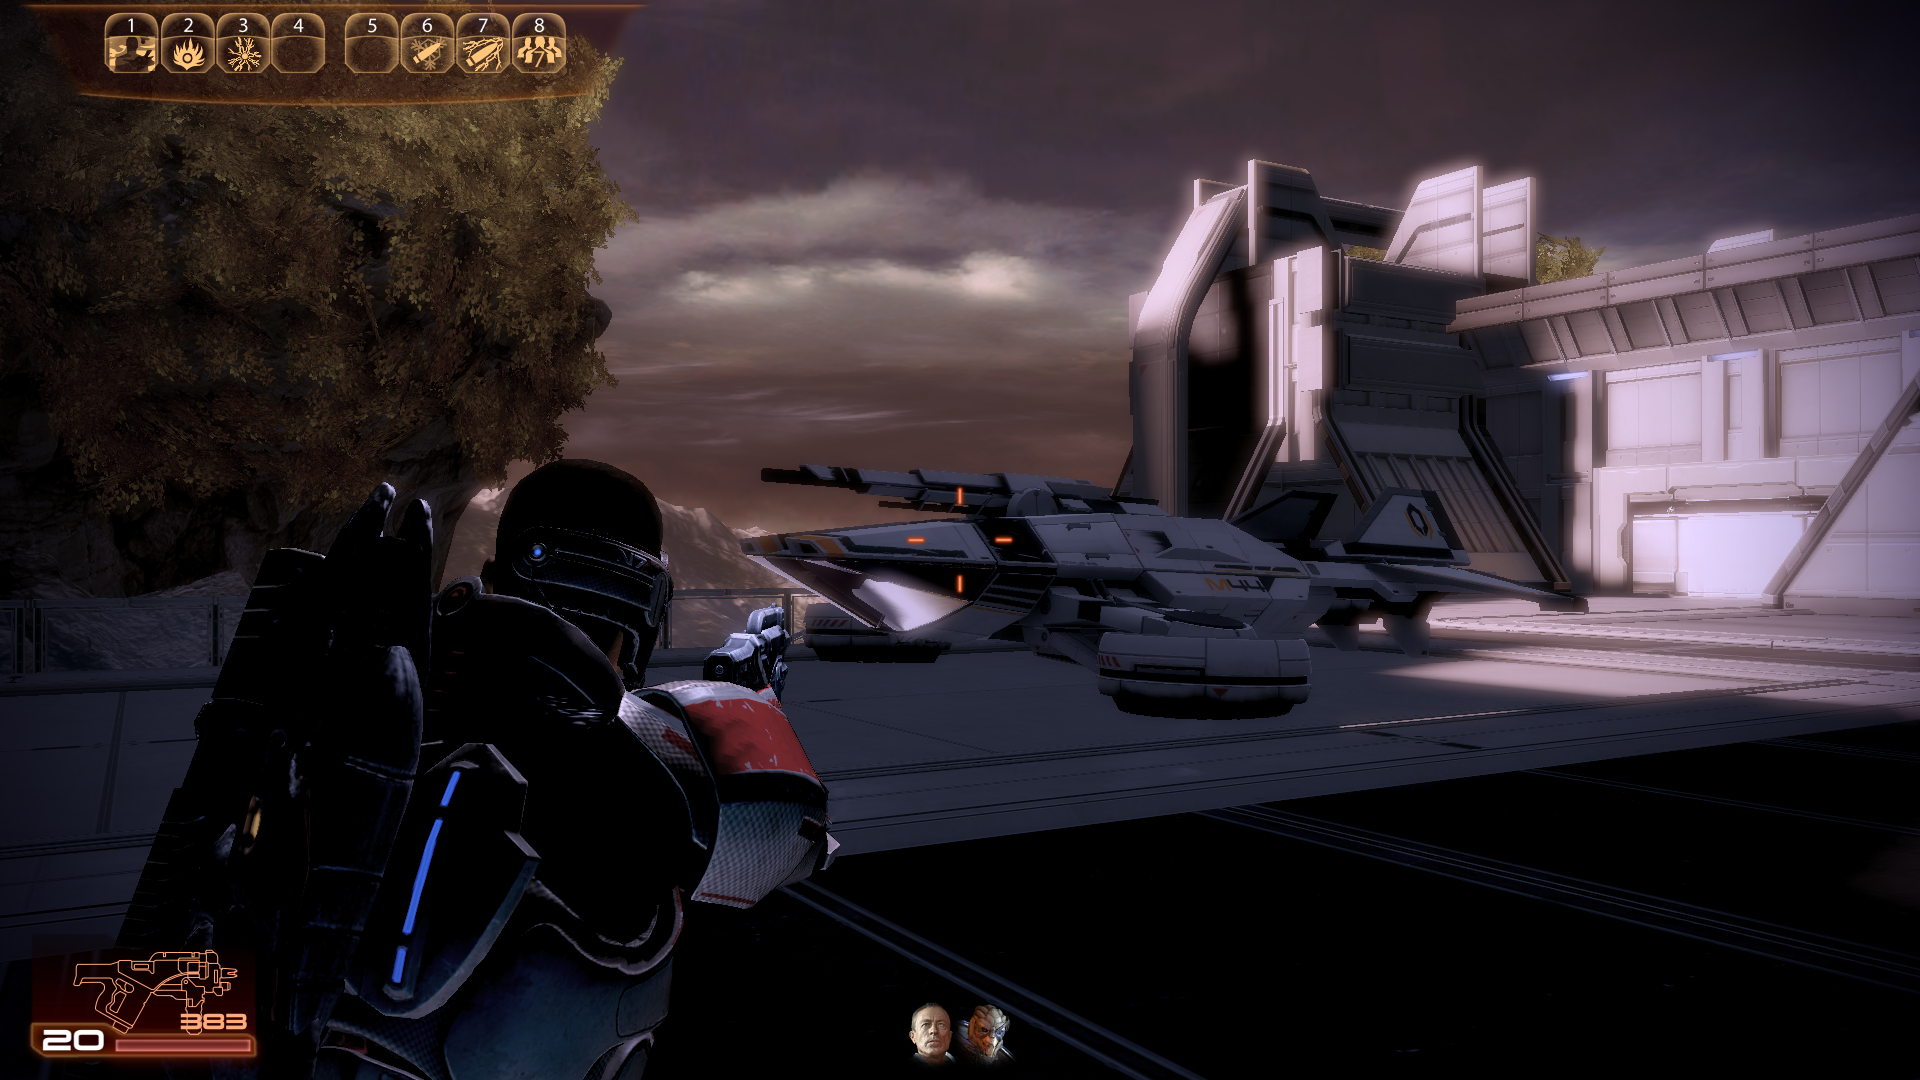 Mass Effect 2: Overlord Windows Welcome back, Hammerhead!